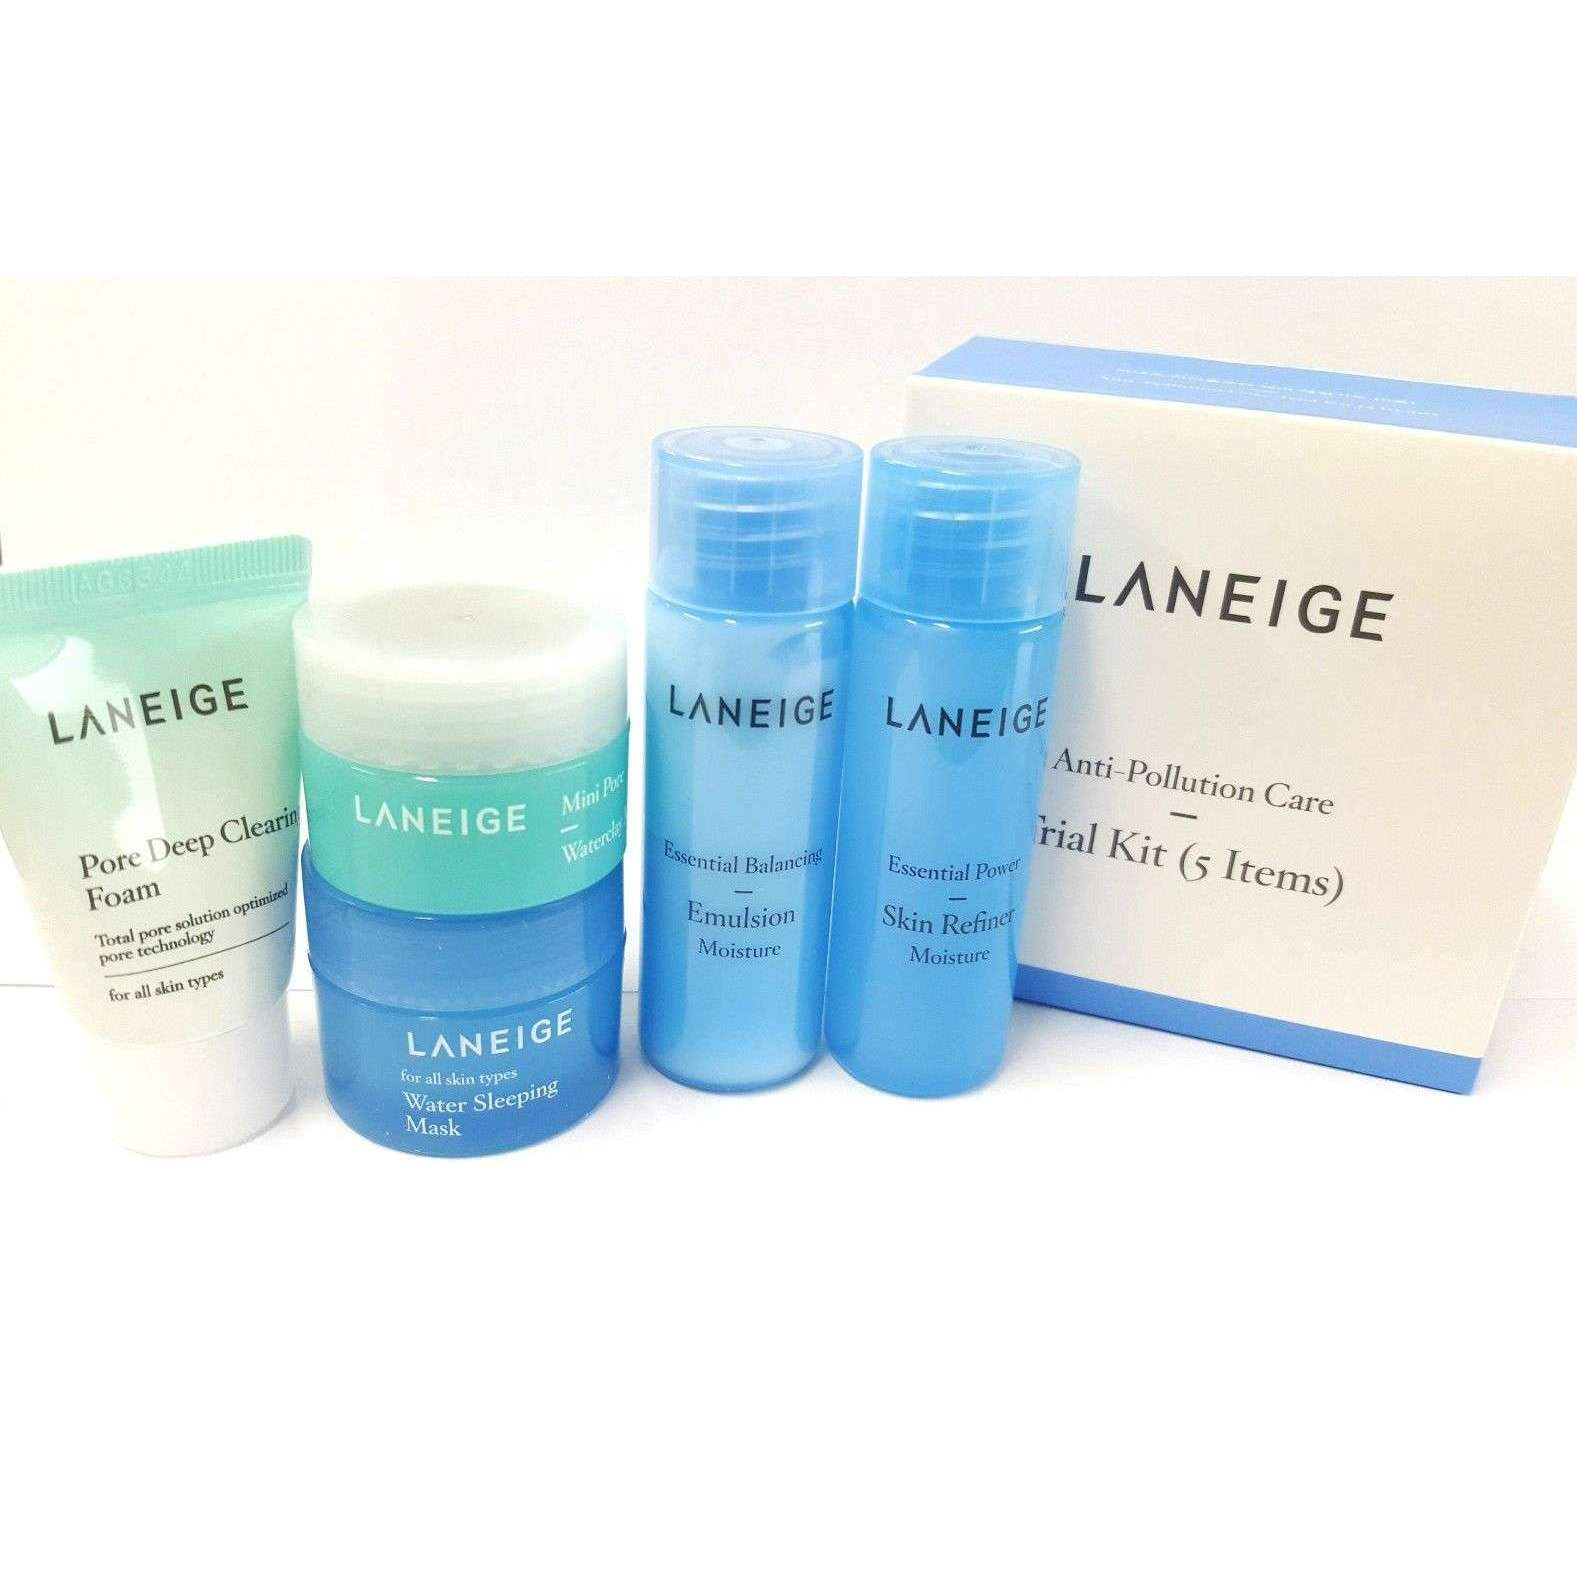 Laneige Anti Pollution Care (5 Items)